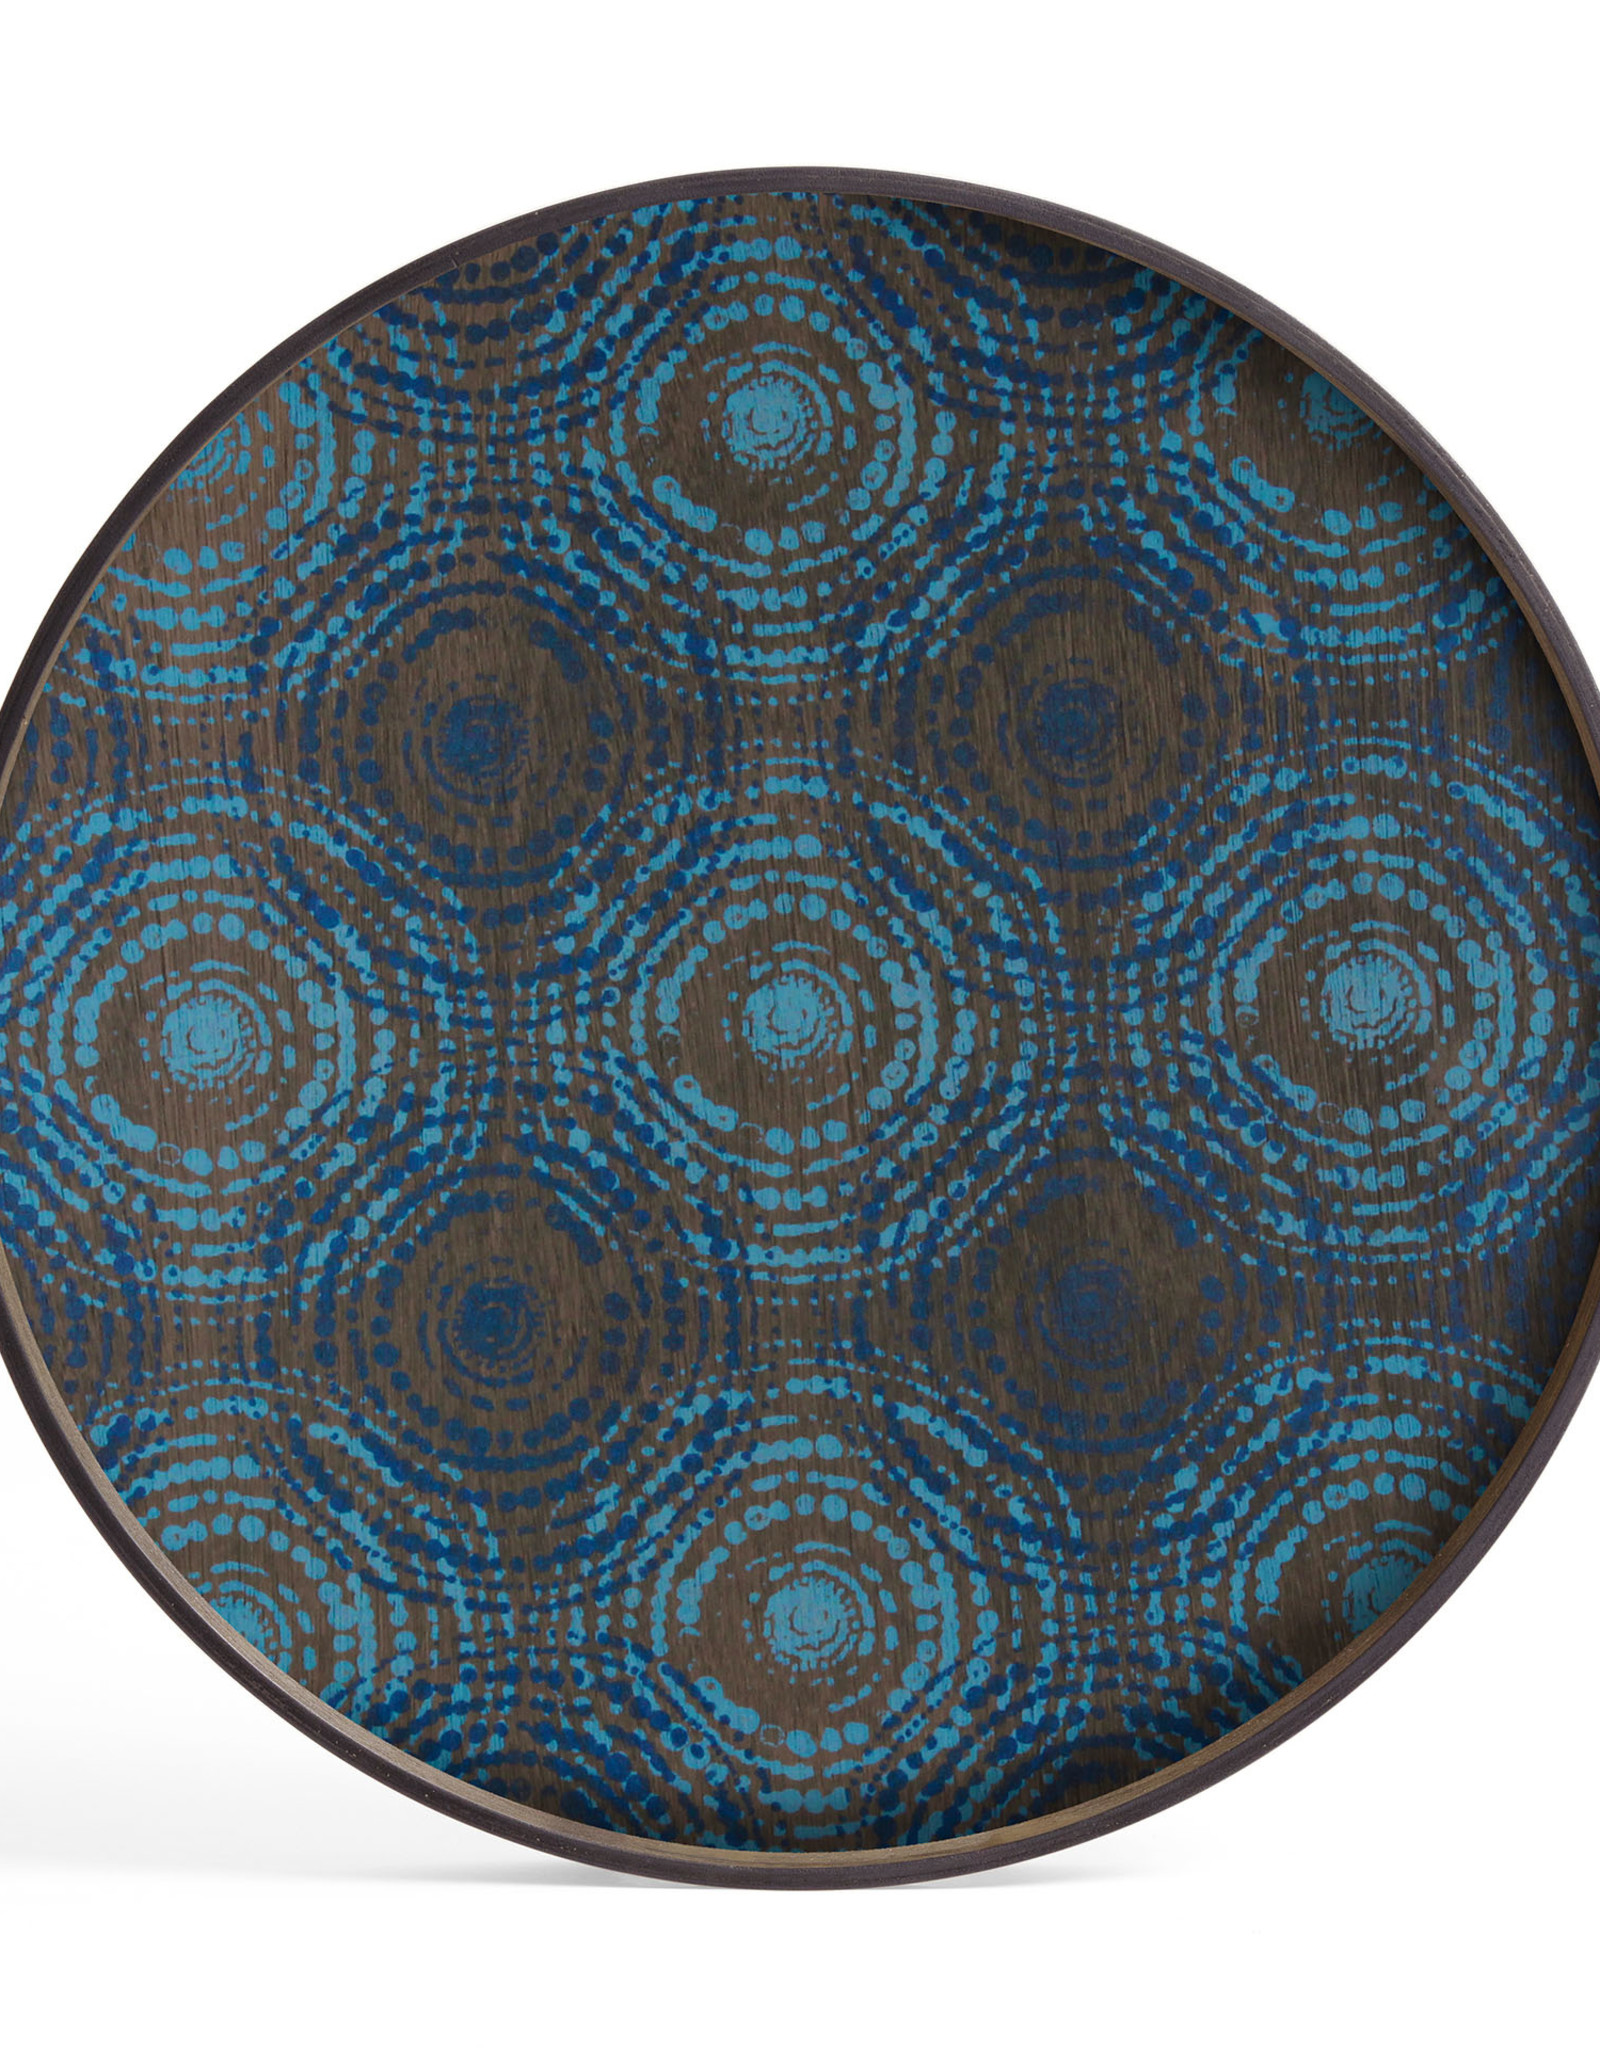 Seaside Beads wooden tray - round - L 24 x 24 x 2